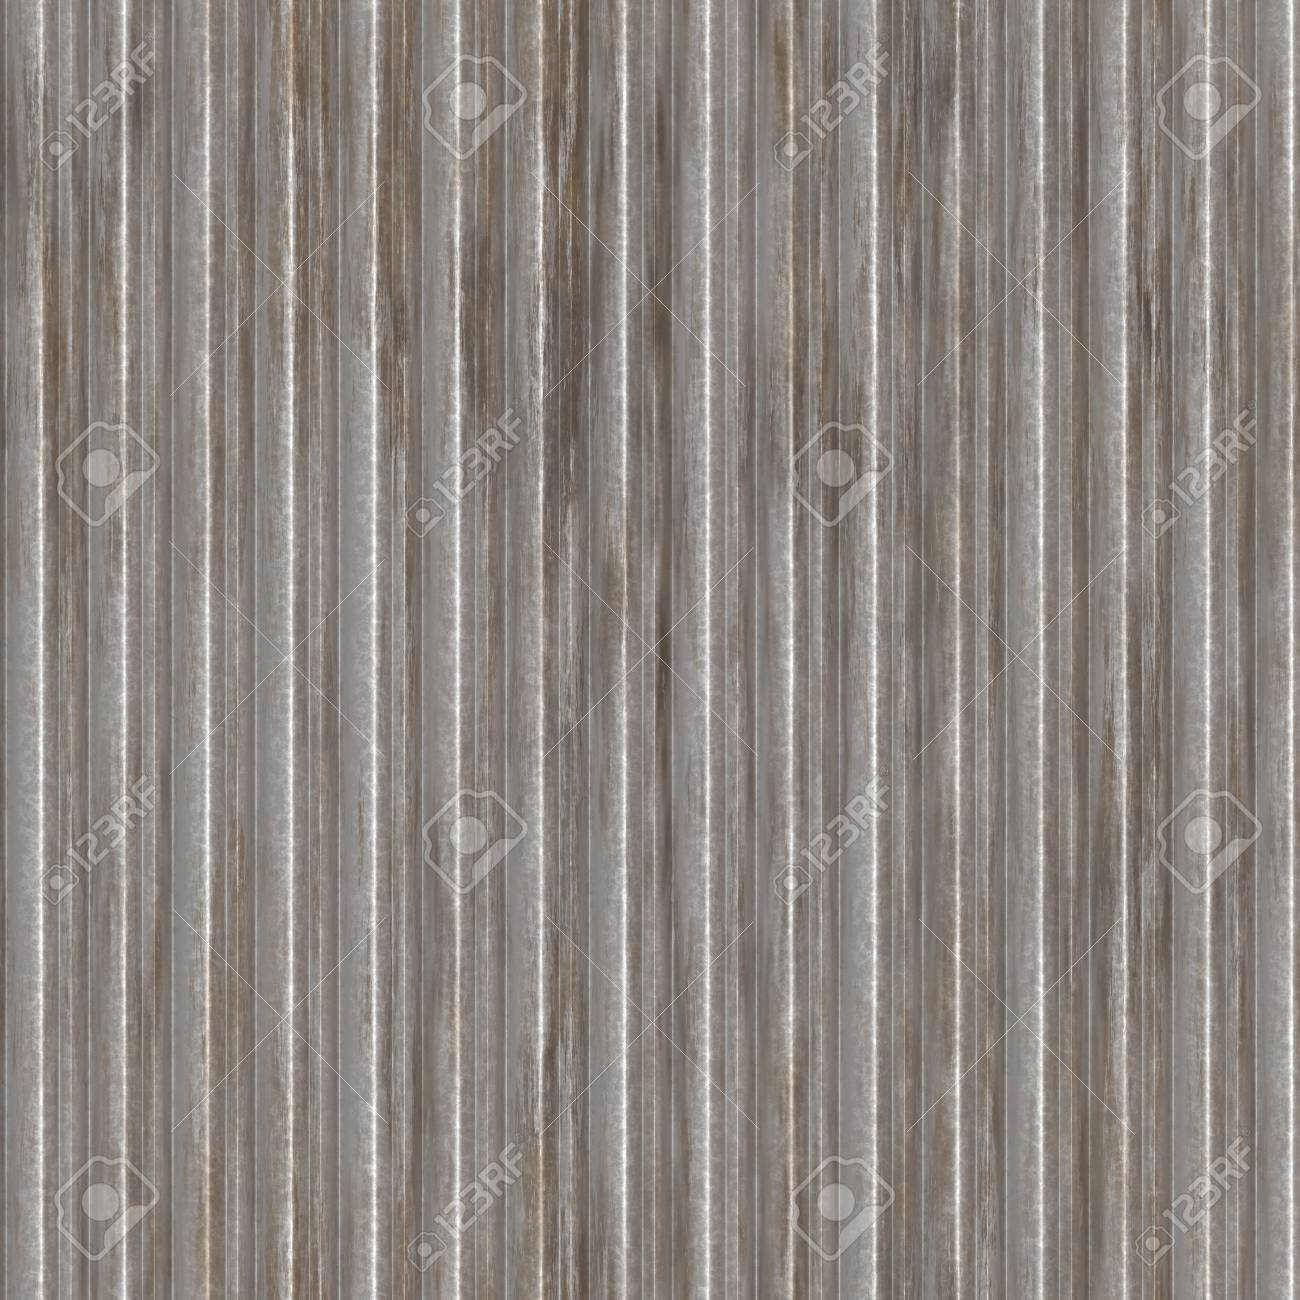 Corrugated metal ridged surface with corrosion seamless texture Stock Photo - 6370432